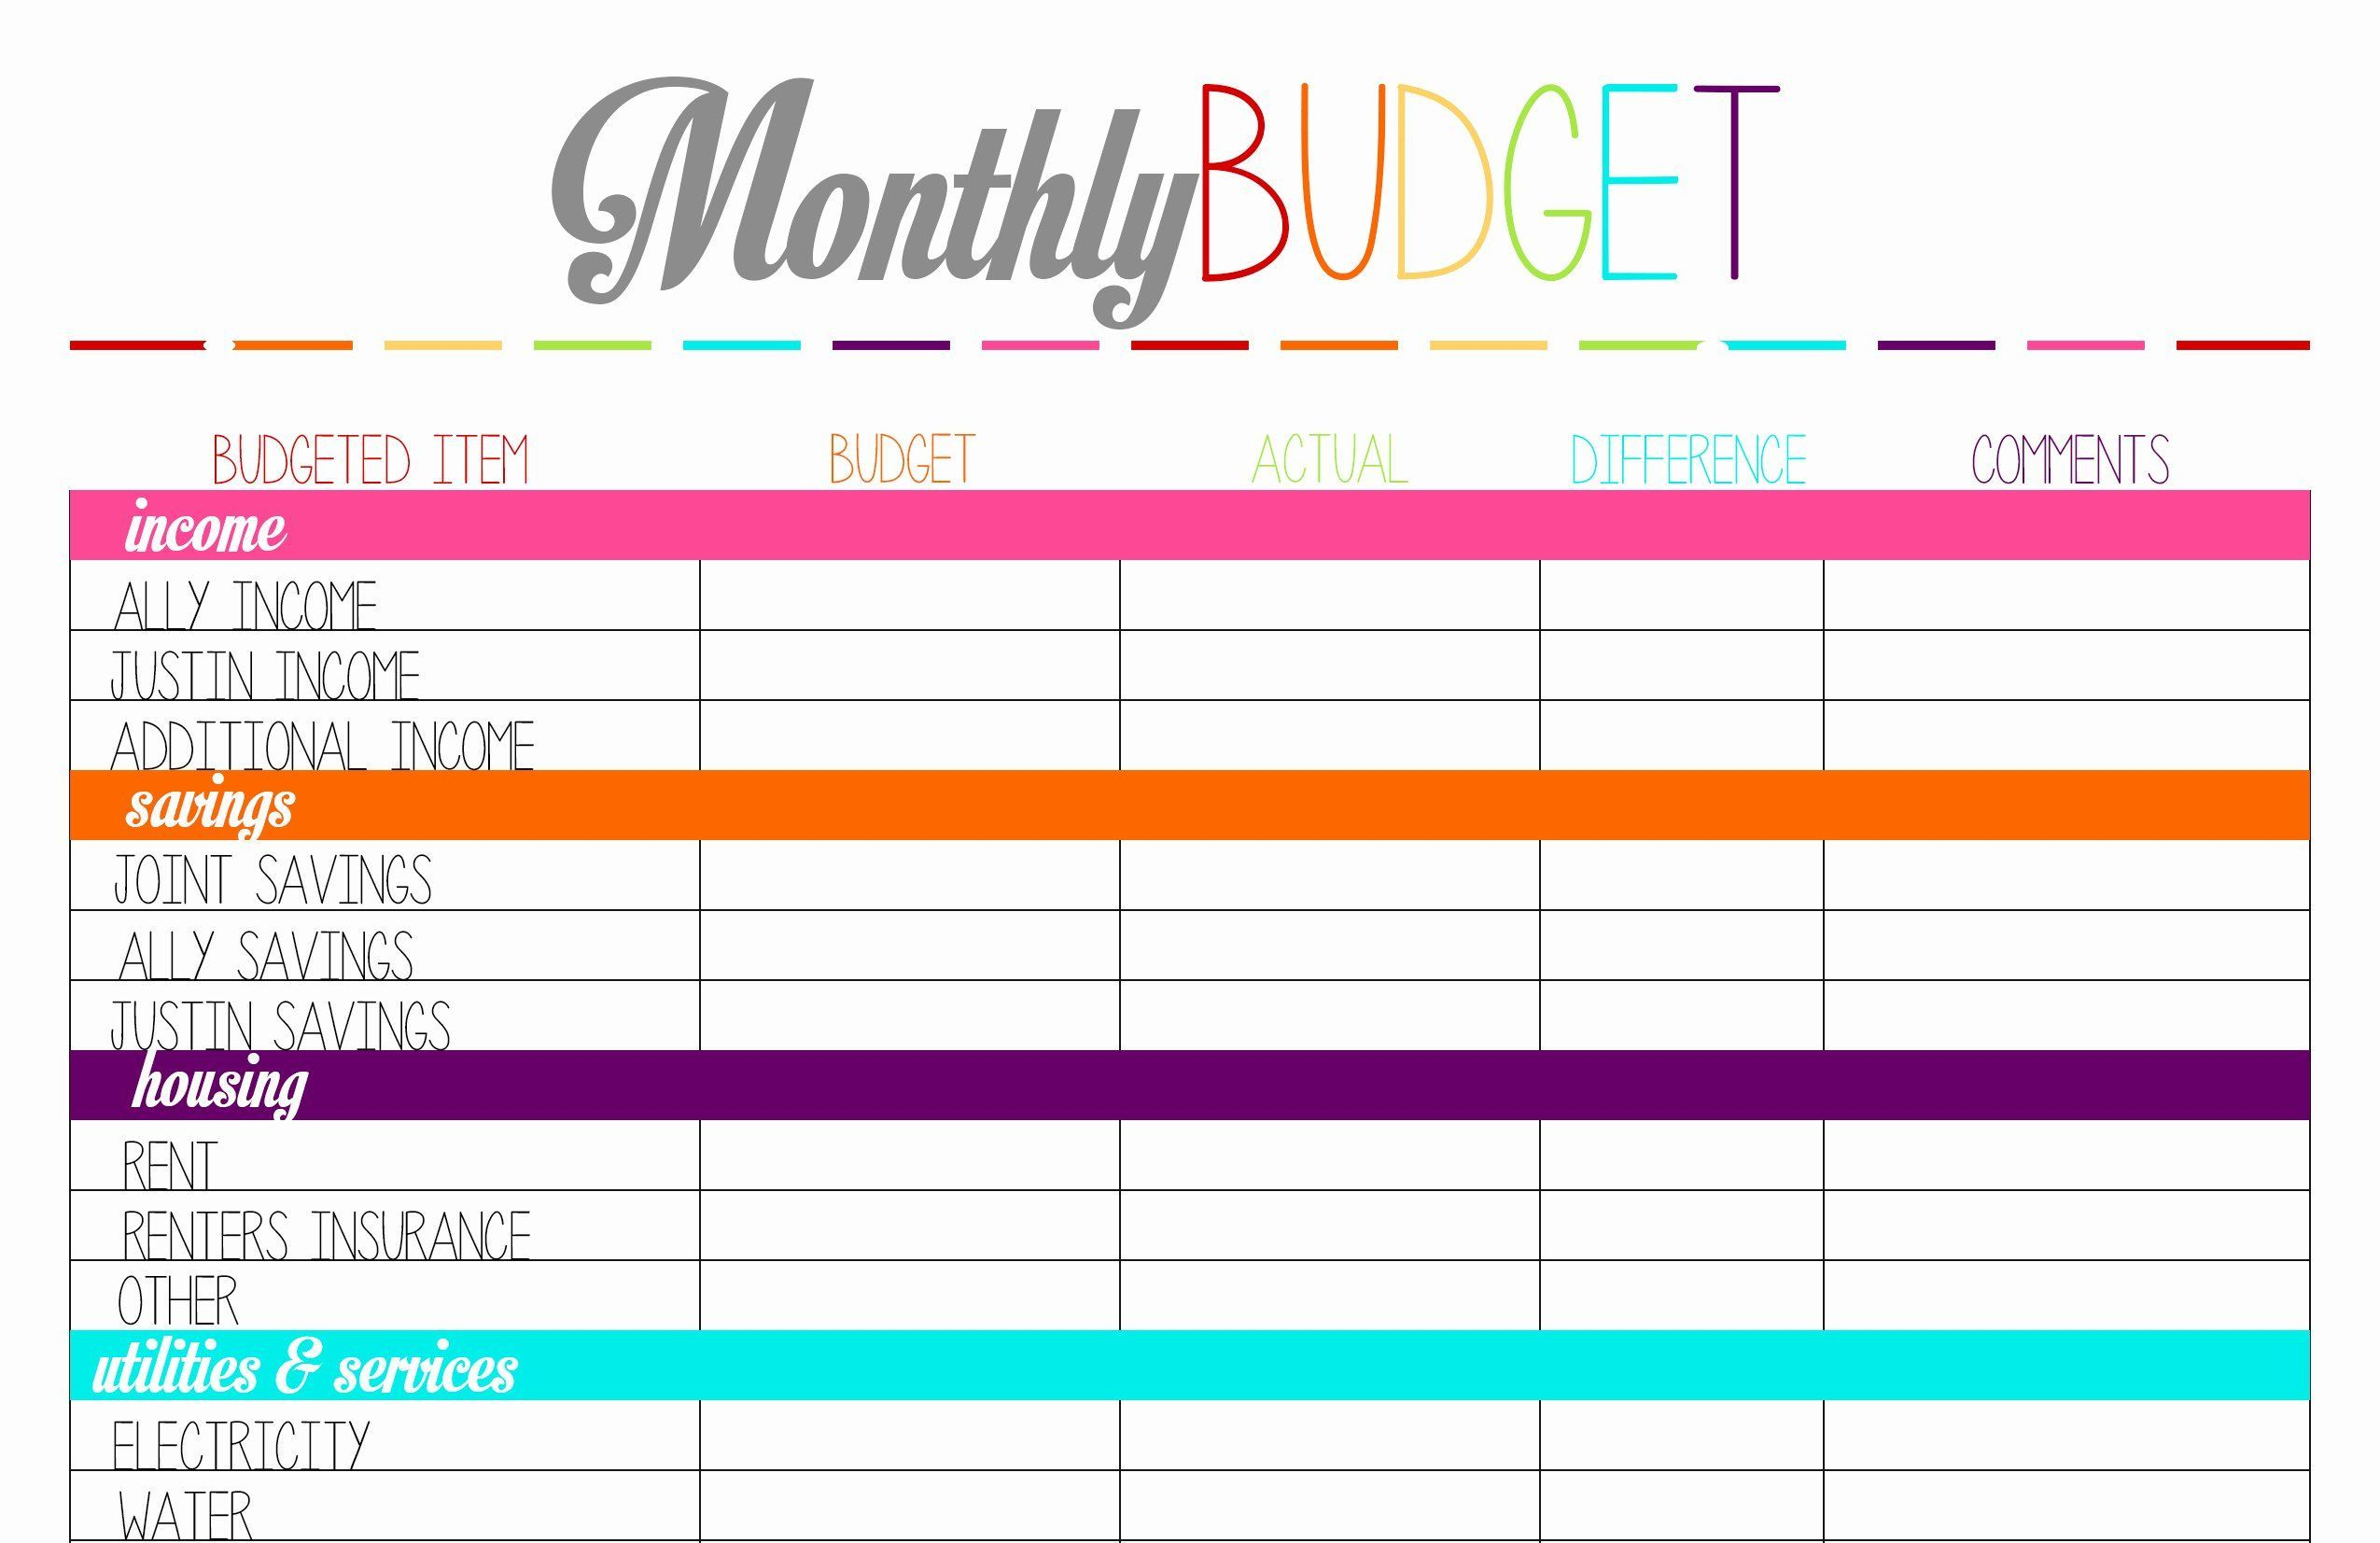 Monthly Budget Planner Template Unique Top 5 Posts Of